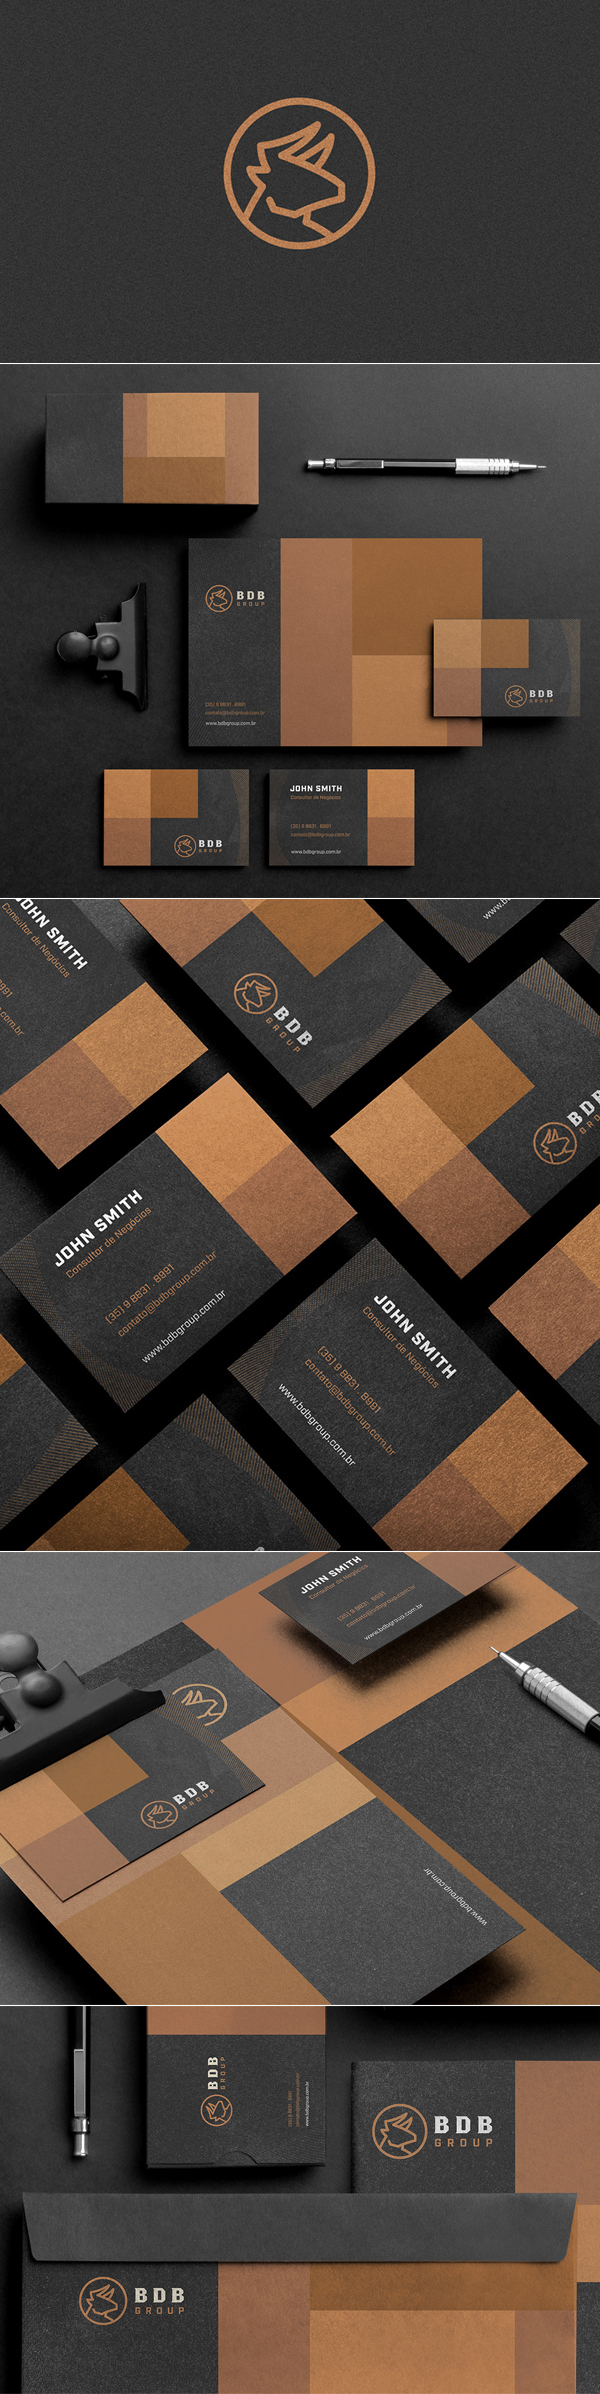 BDB Group Branding by David Silva